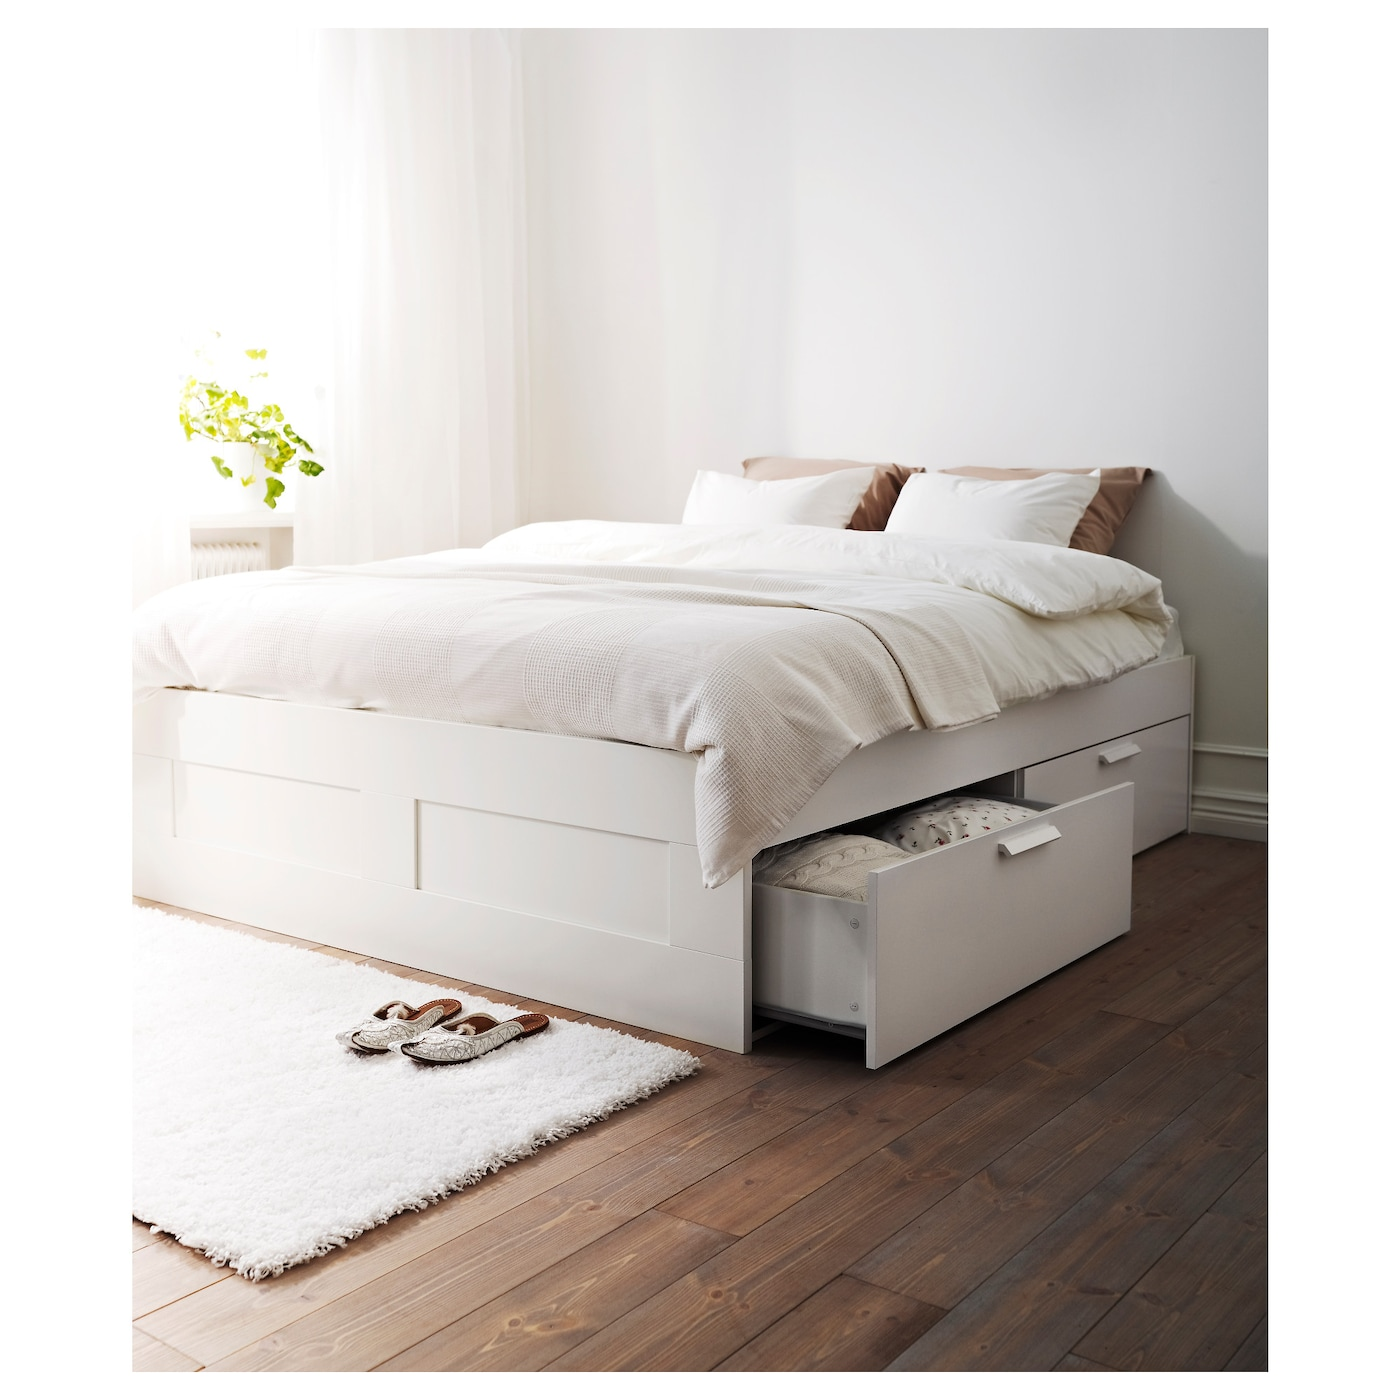 BRIMNES Bed frame with storage White luröy Standard King IKEA